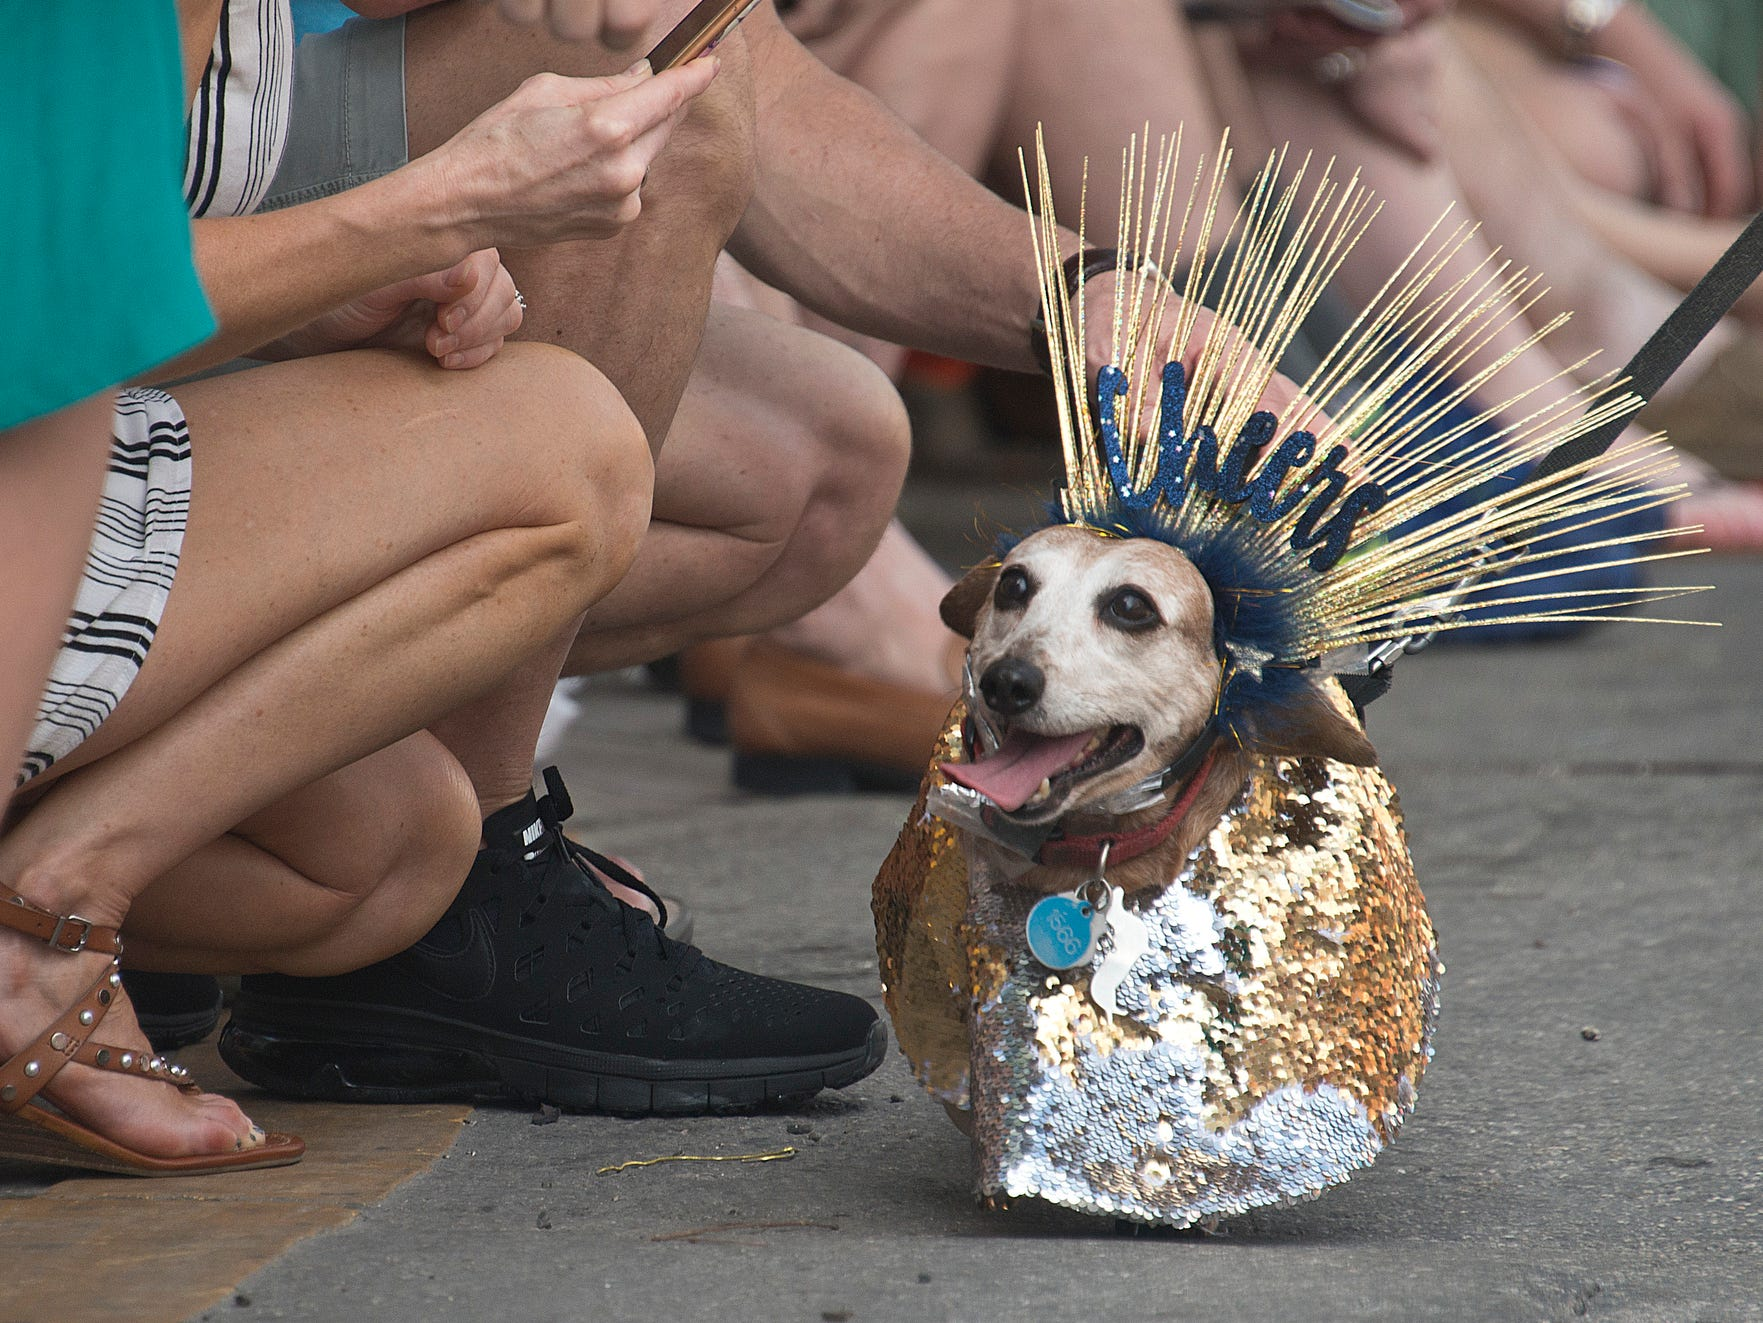 A dachshund strolls past spectators in Key West, Fla., Monday, during the Key West Dachshund Walk. Organizers said that more than 300 short-legged, long-bodied canines participated in the event that preceded six warm-weather, Key West takeoffs on New York City's traditional Times Square ball drop.